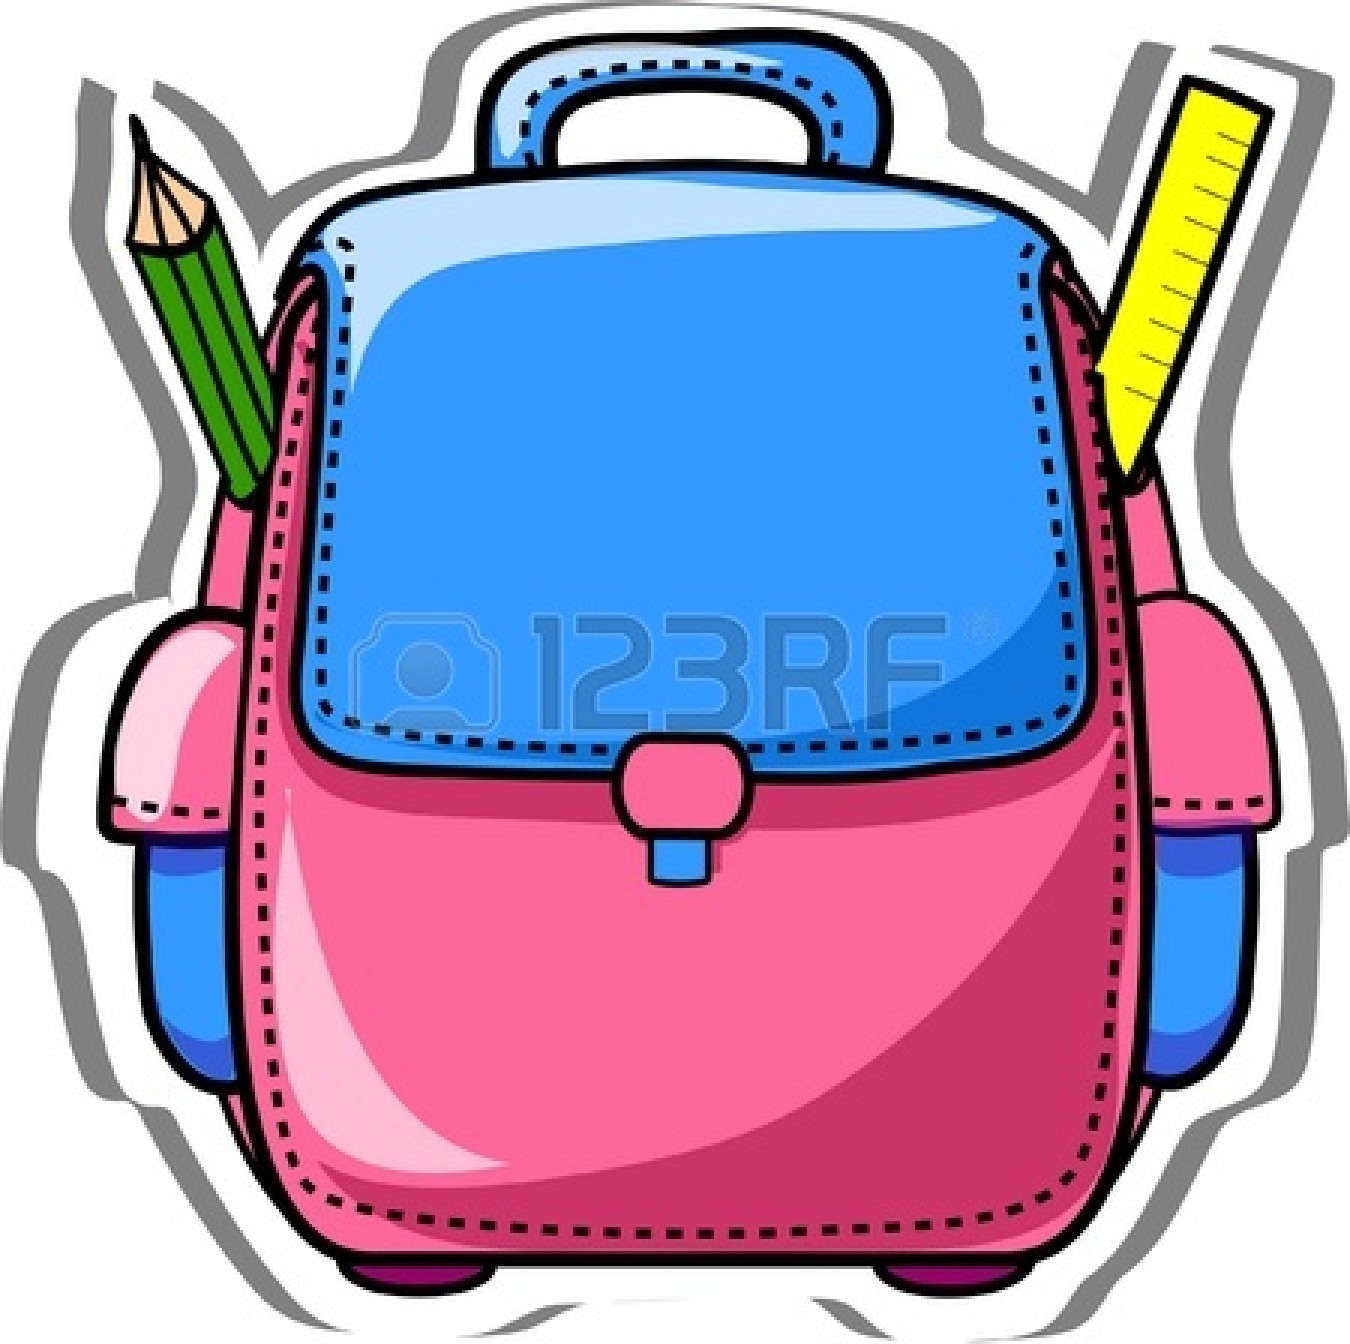 Backpack and materials school clipart clipart School Backpack Clipart | Free download best School Backpack Clipart ... clipart